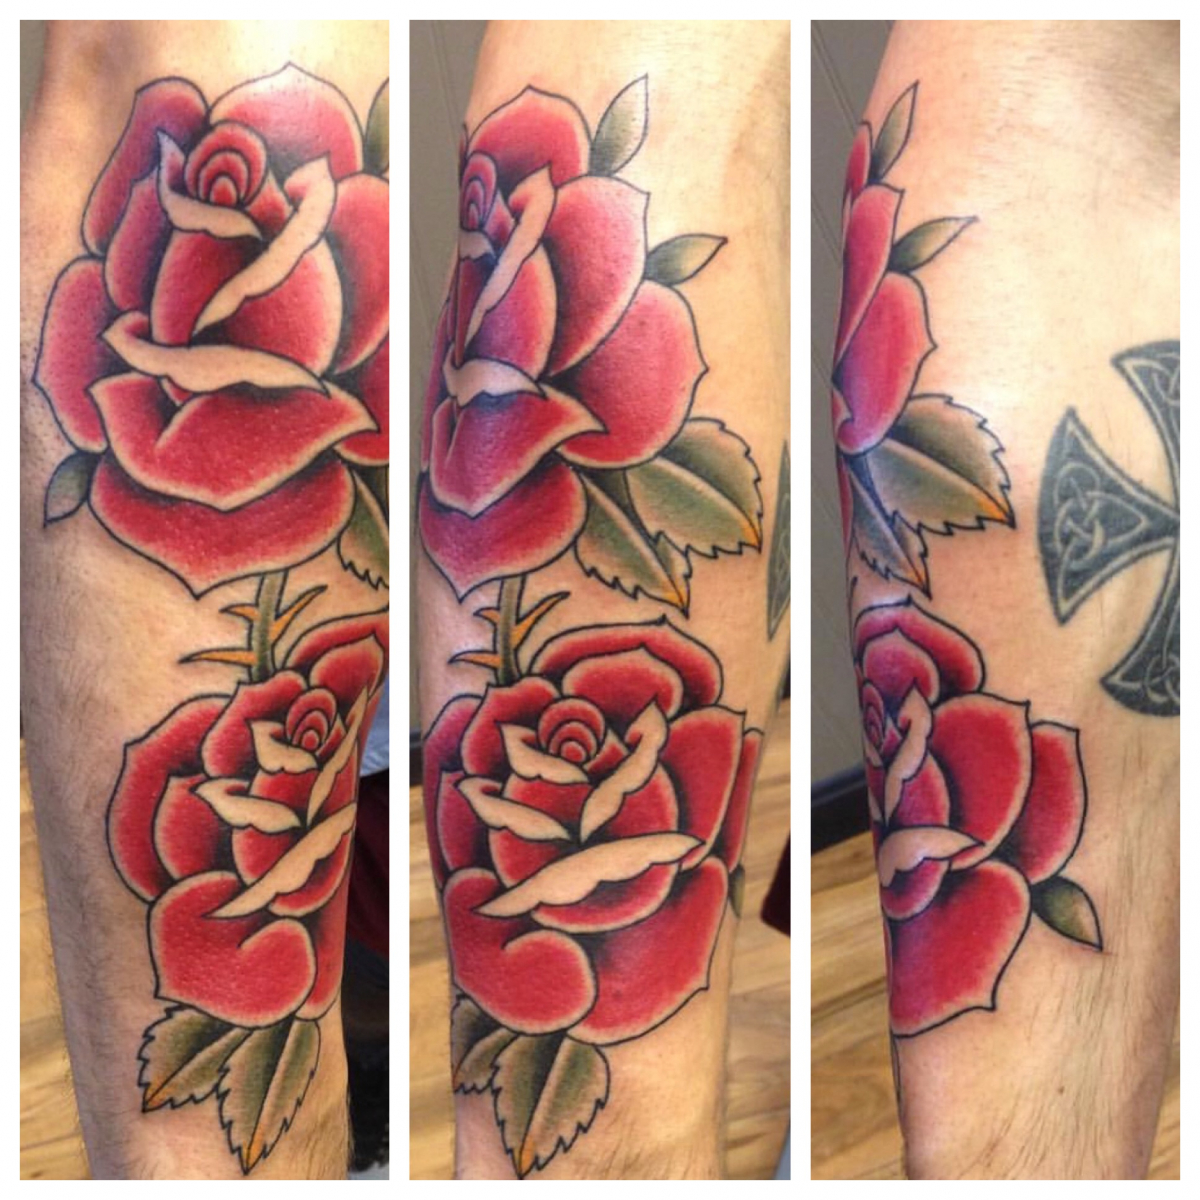 Will Self NH Tattoo Artist Boston Concord Worcester MA Trad Traditional Tattoos Neo-trad NeoTraditional neo-traditional amazing best tattoo artist New England Old School Japanese Americana American Tattooing Style roses